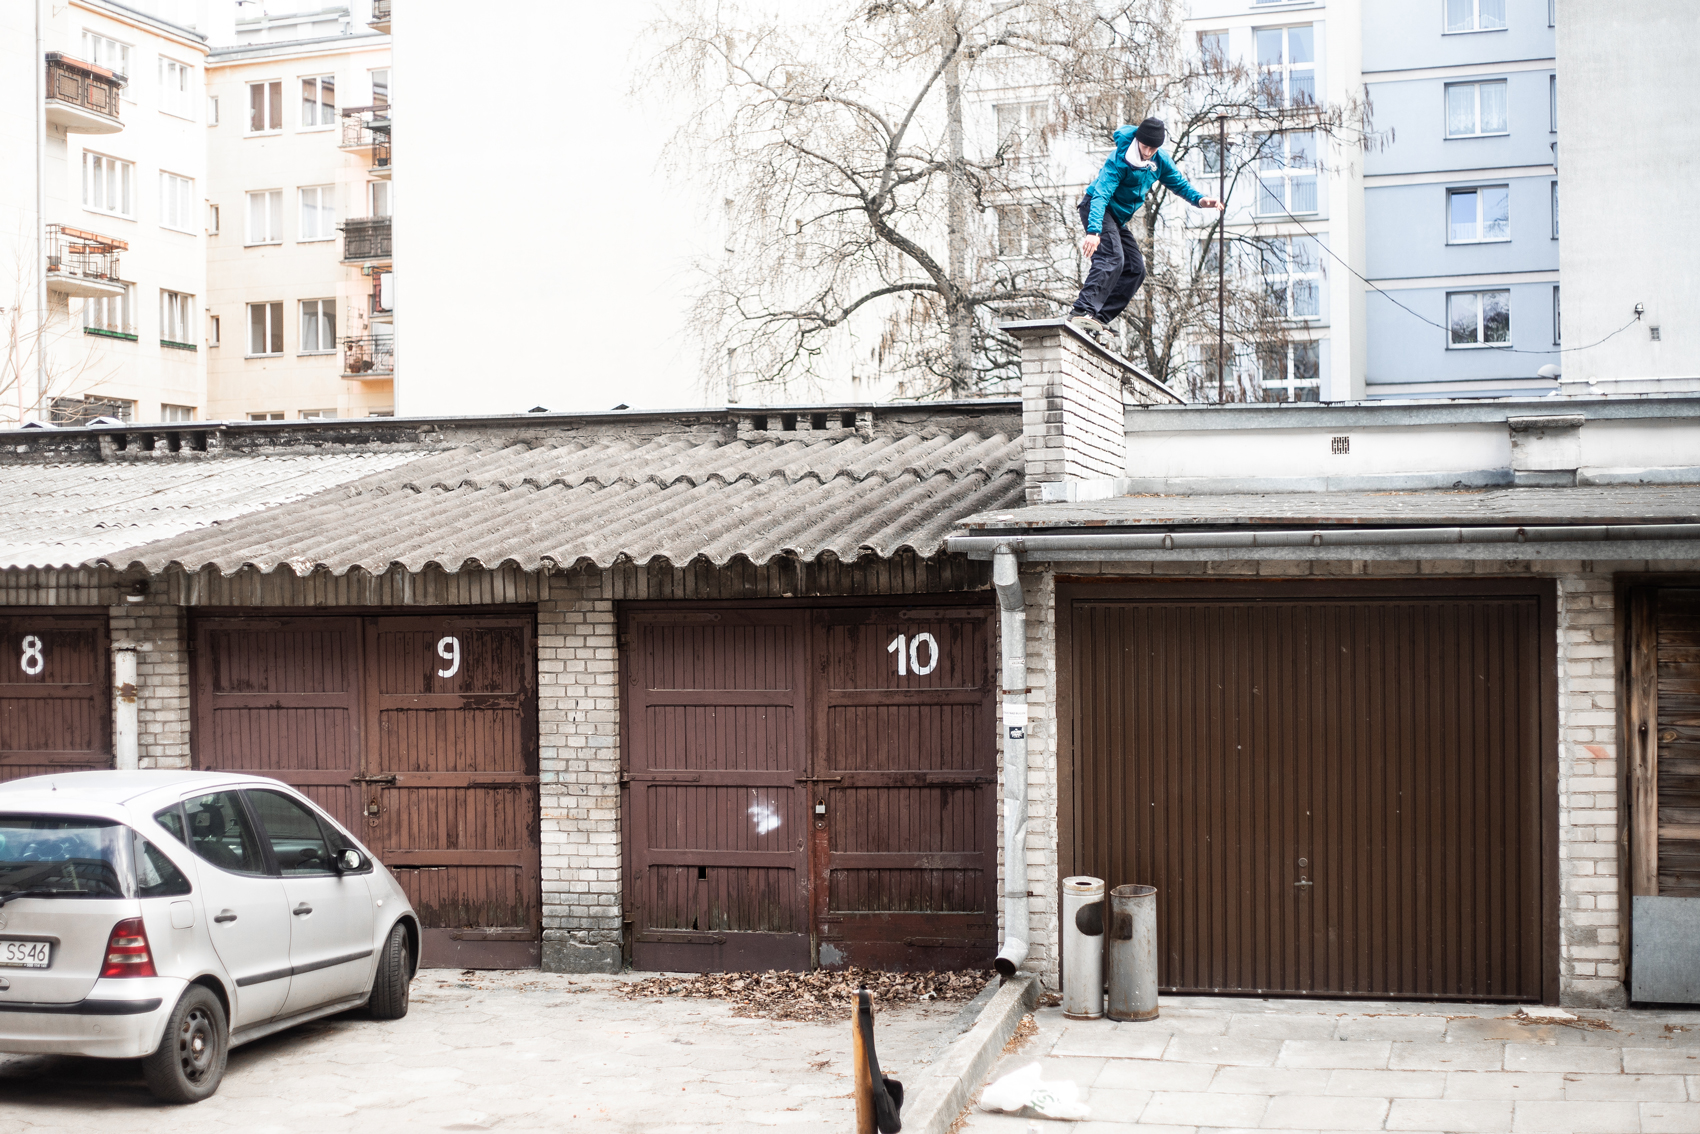 Bs Fifty to roof, drop down